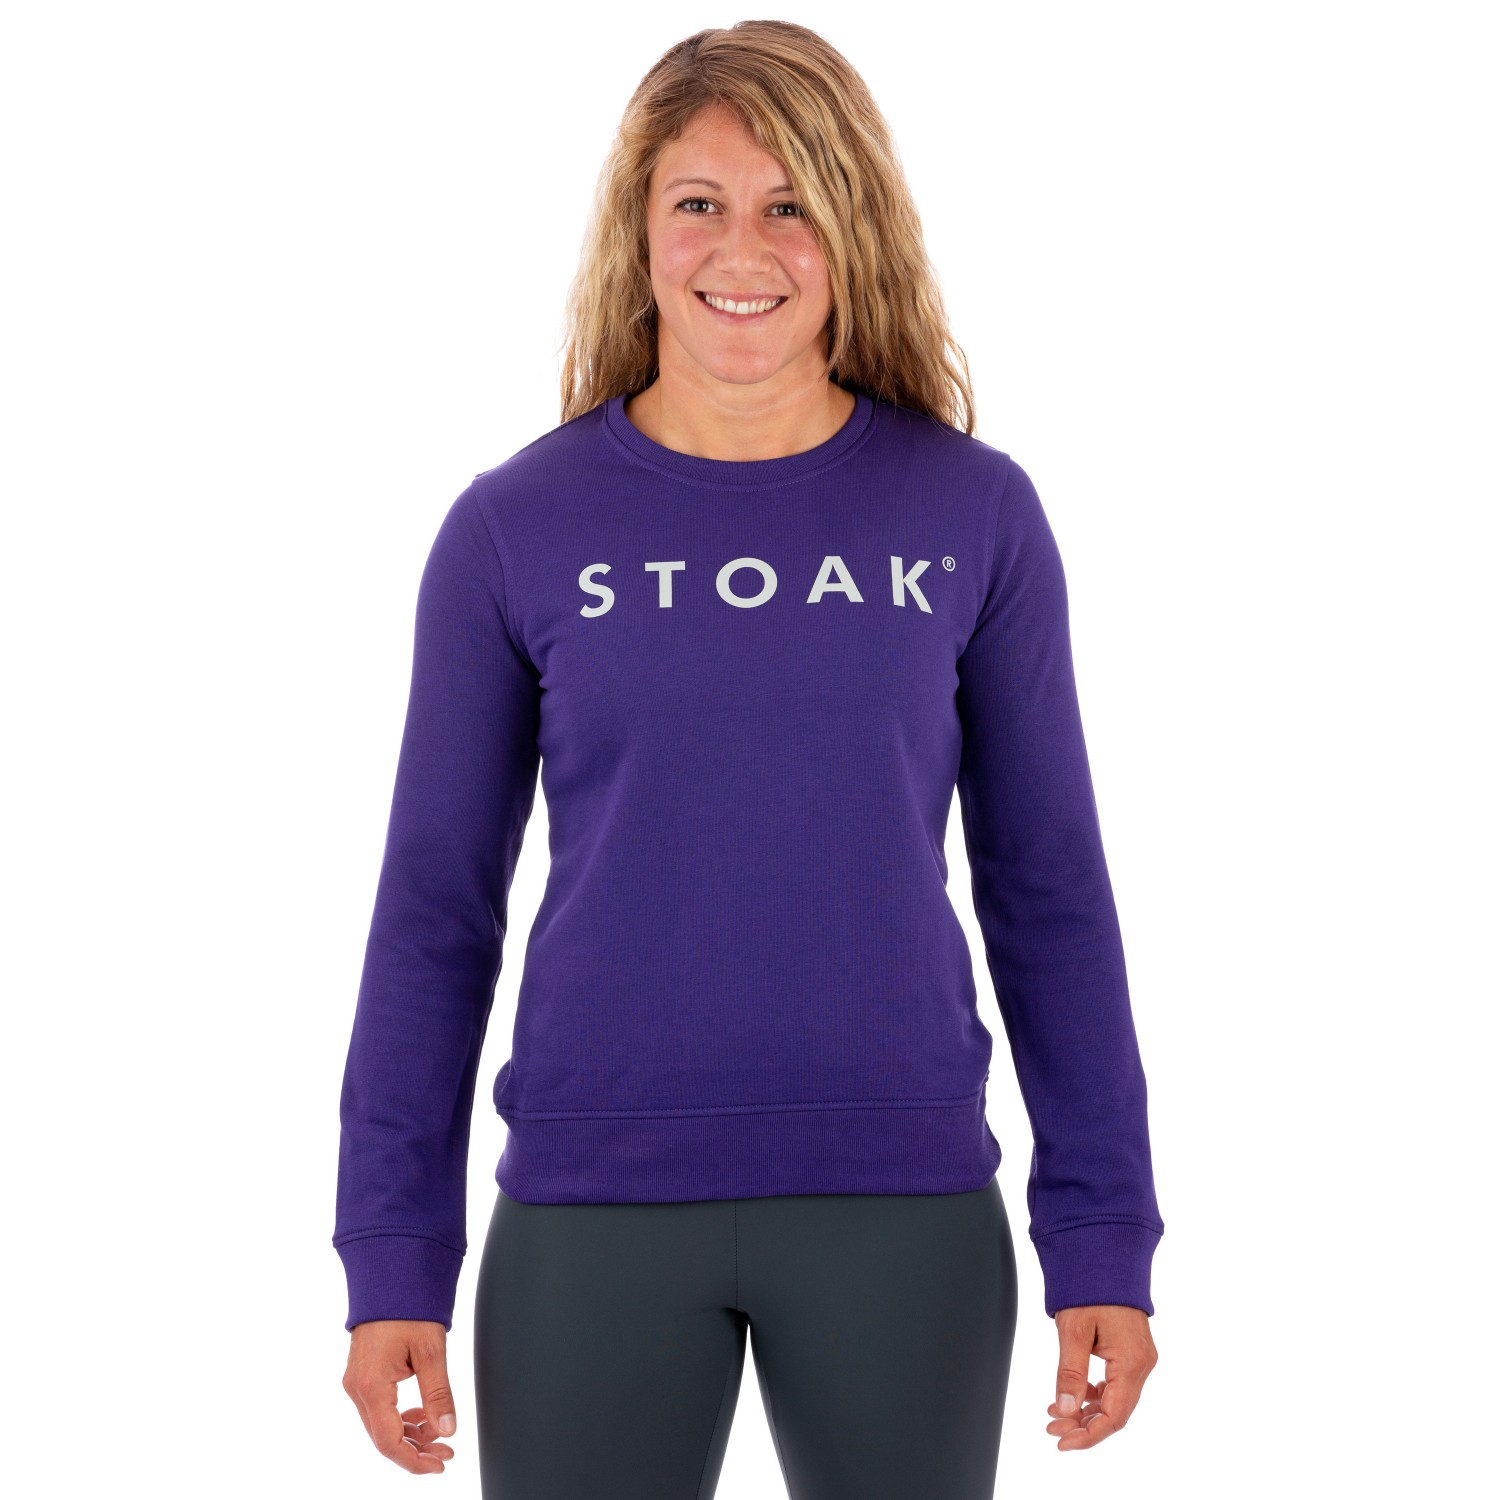 STOAK LILLY Crewneck